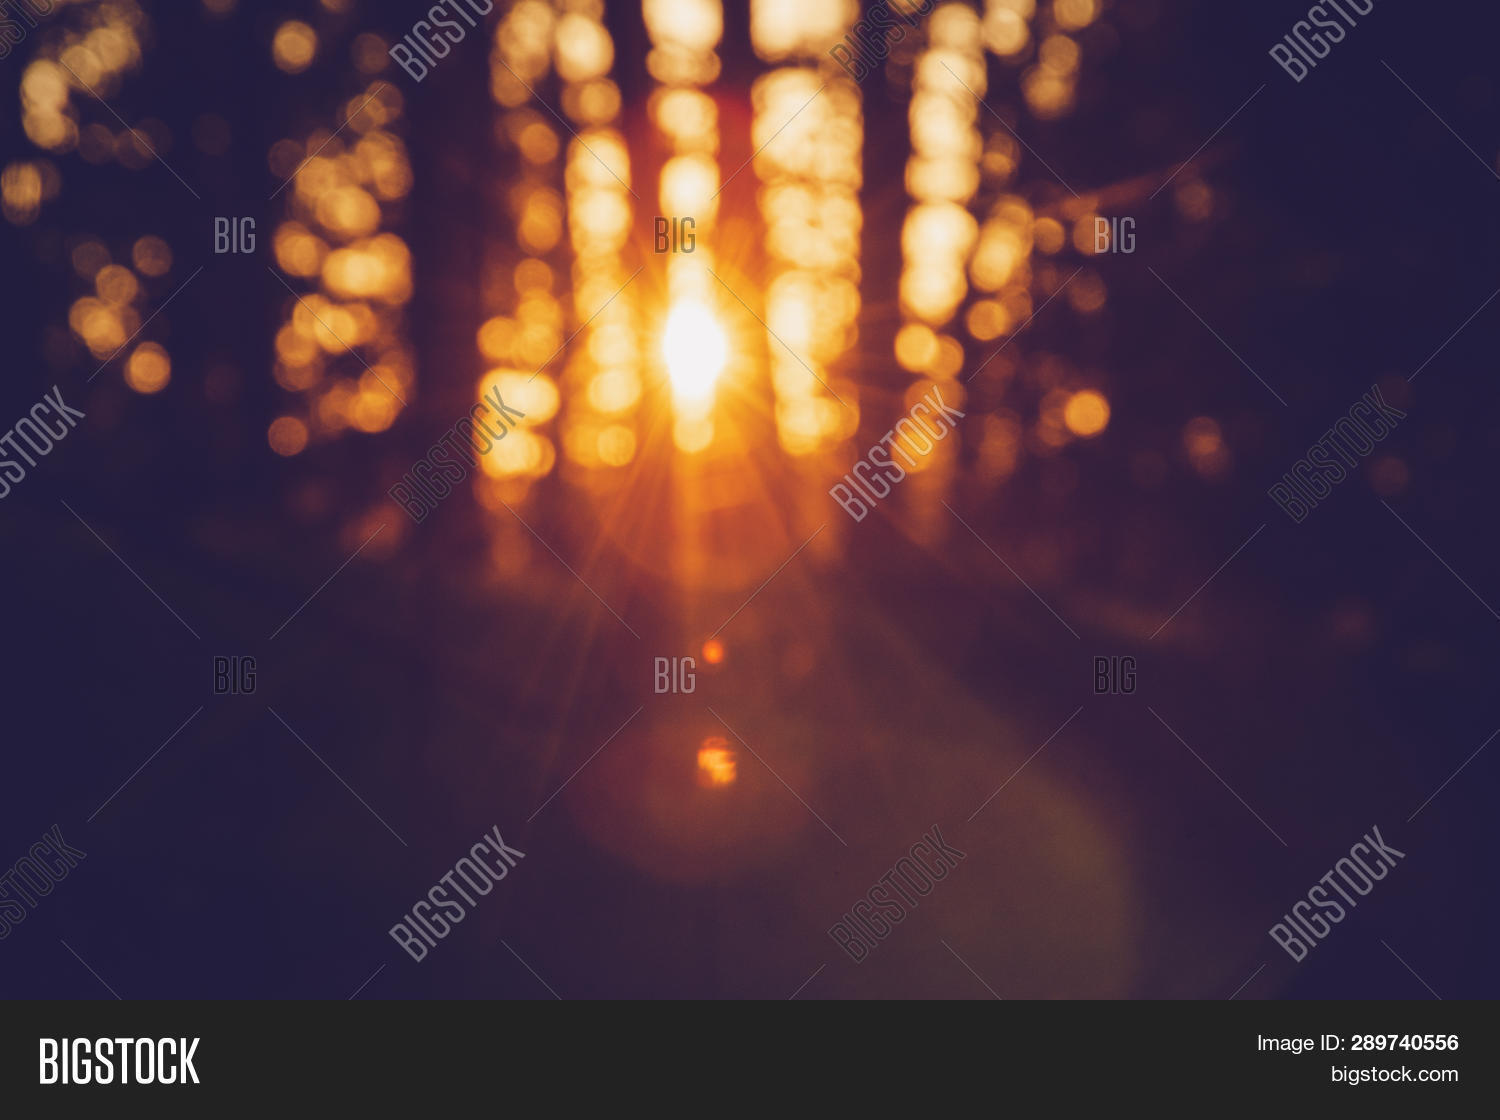 Sunset Pine Forest Image Photo Free Trial Bigstock